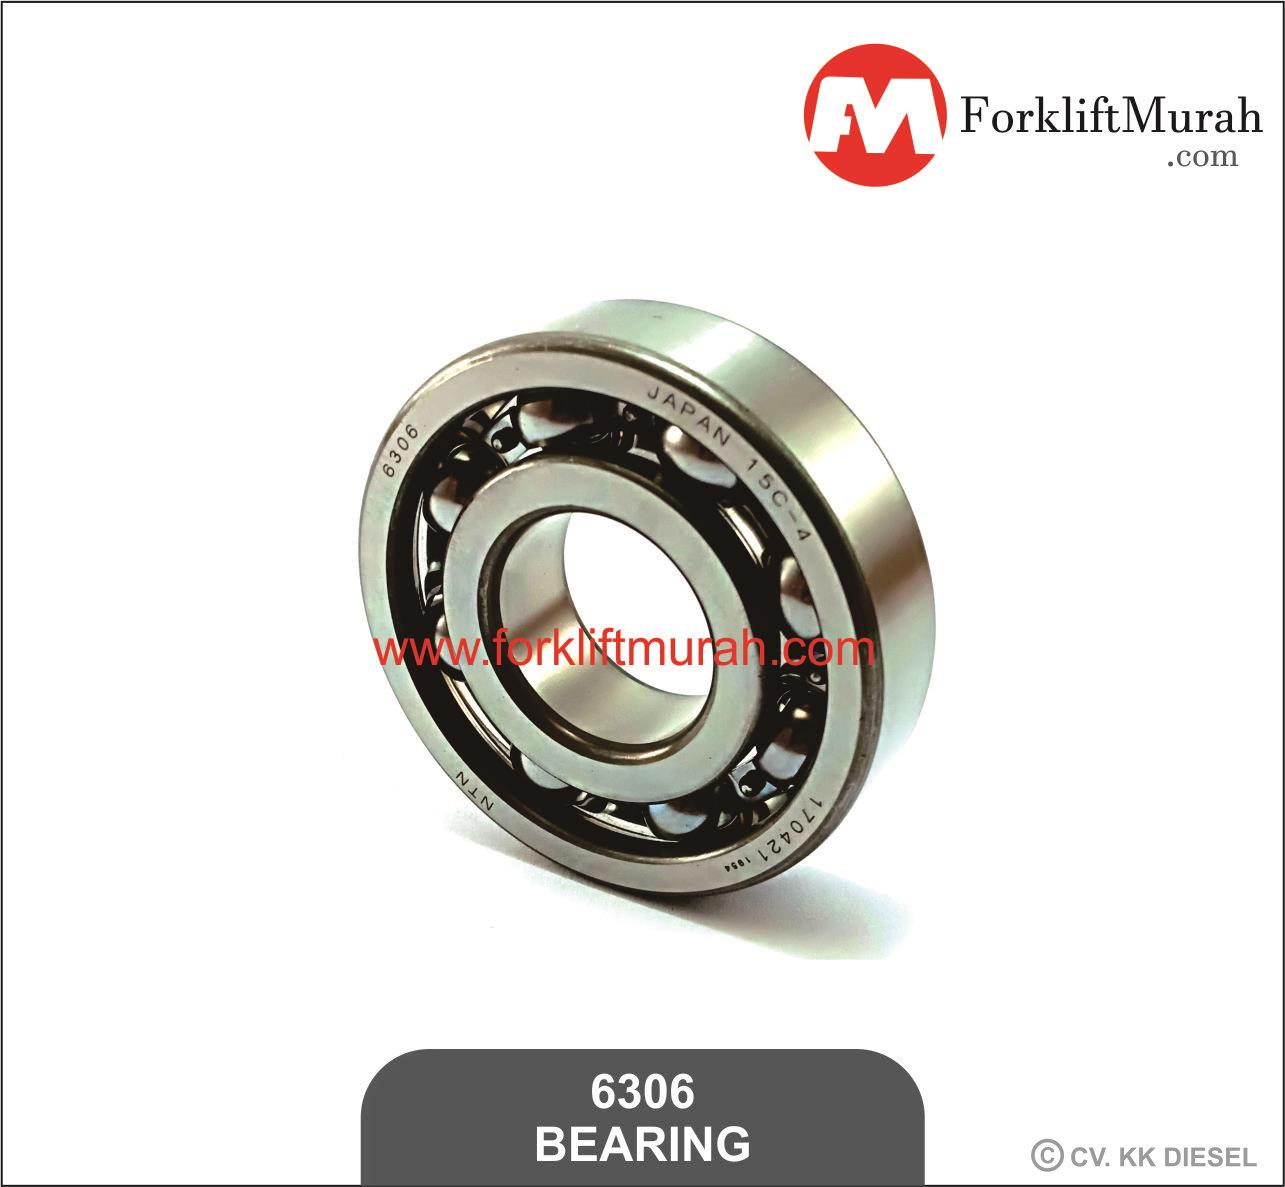 Jual Bearing Laker Forklift Part Number 6306 Harga Murah